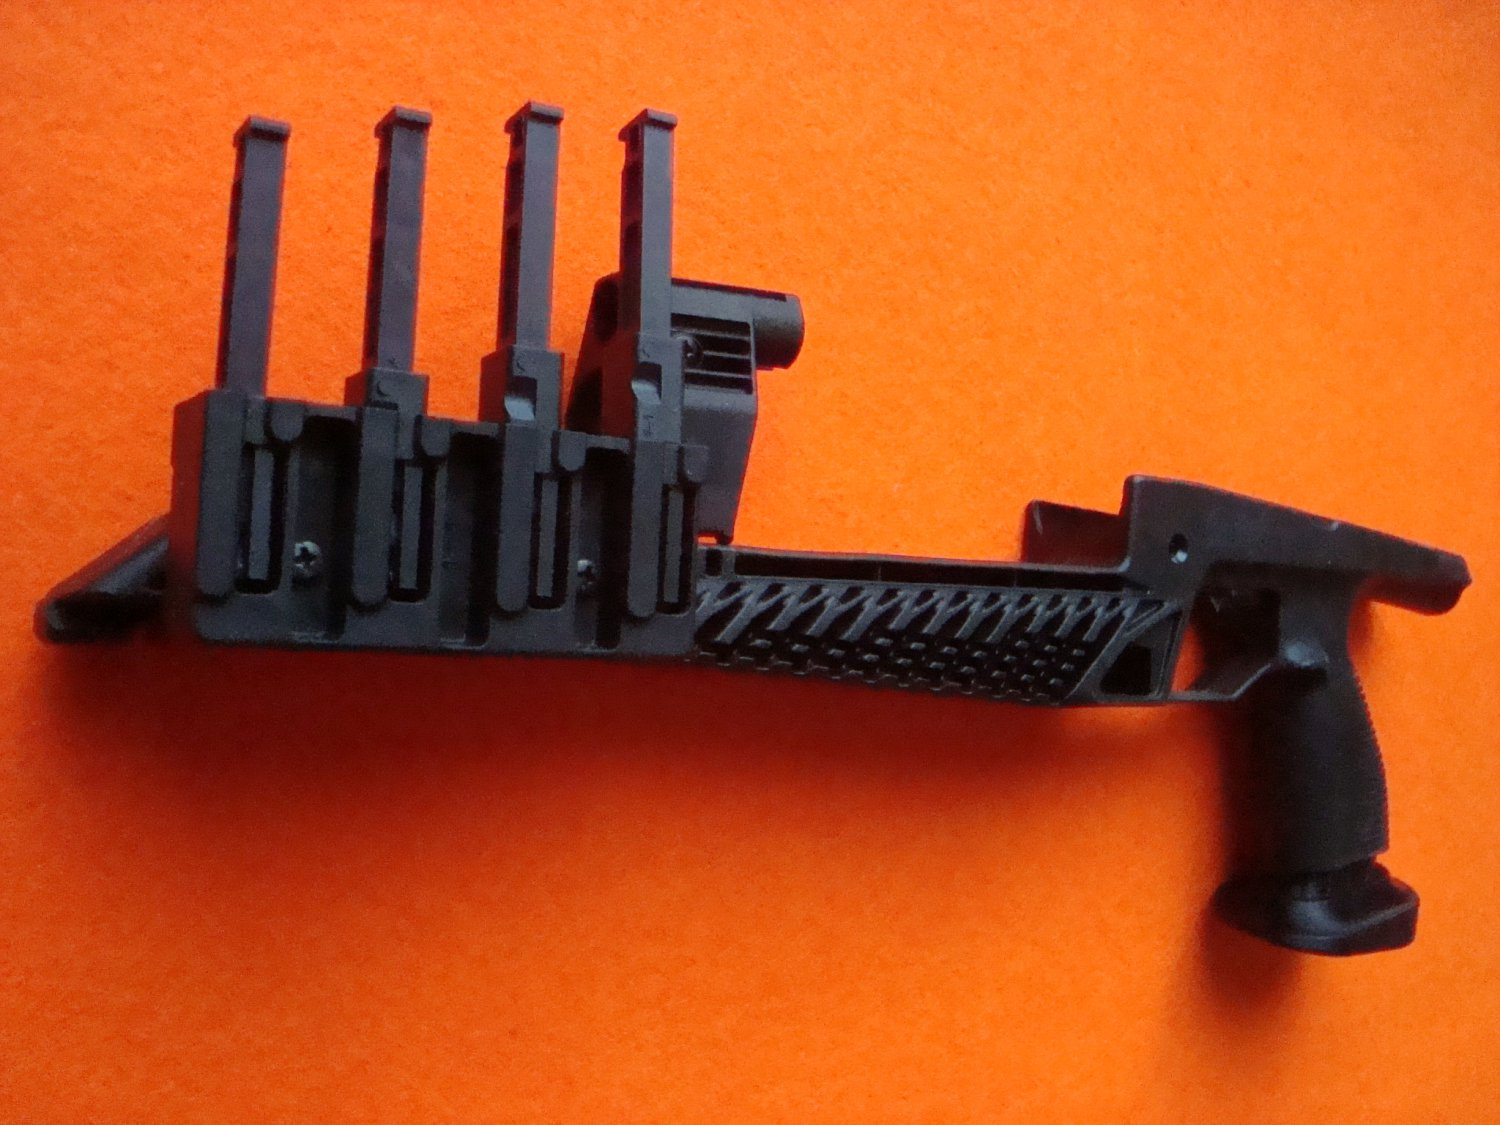 Forearm and rack MP-61, IZH-61 with cap for handle, also case under 4 magazine, parts made to order.